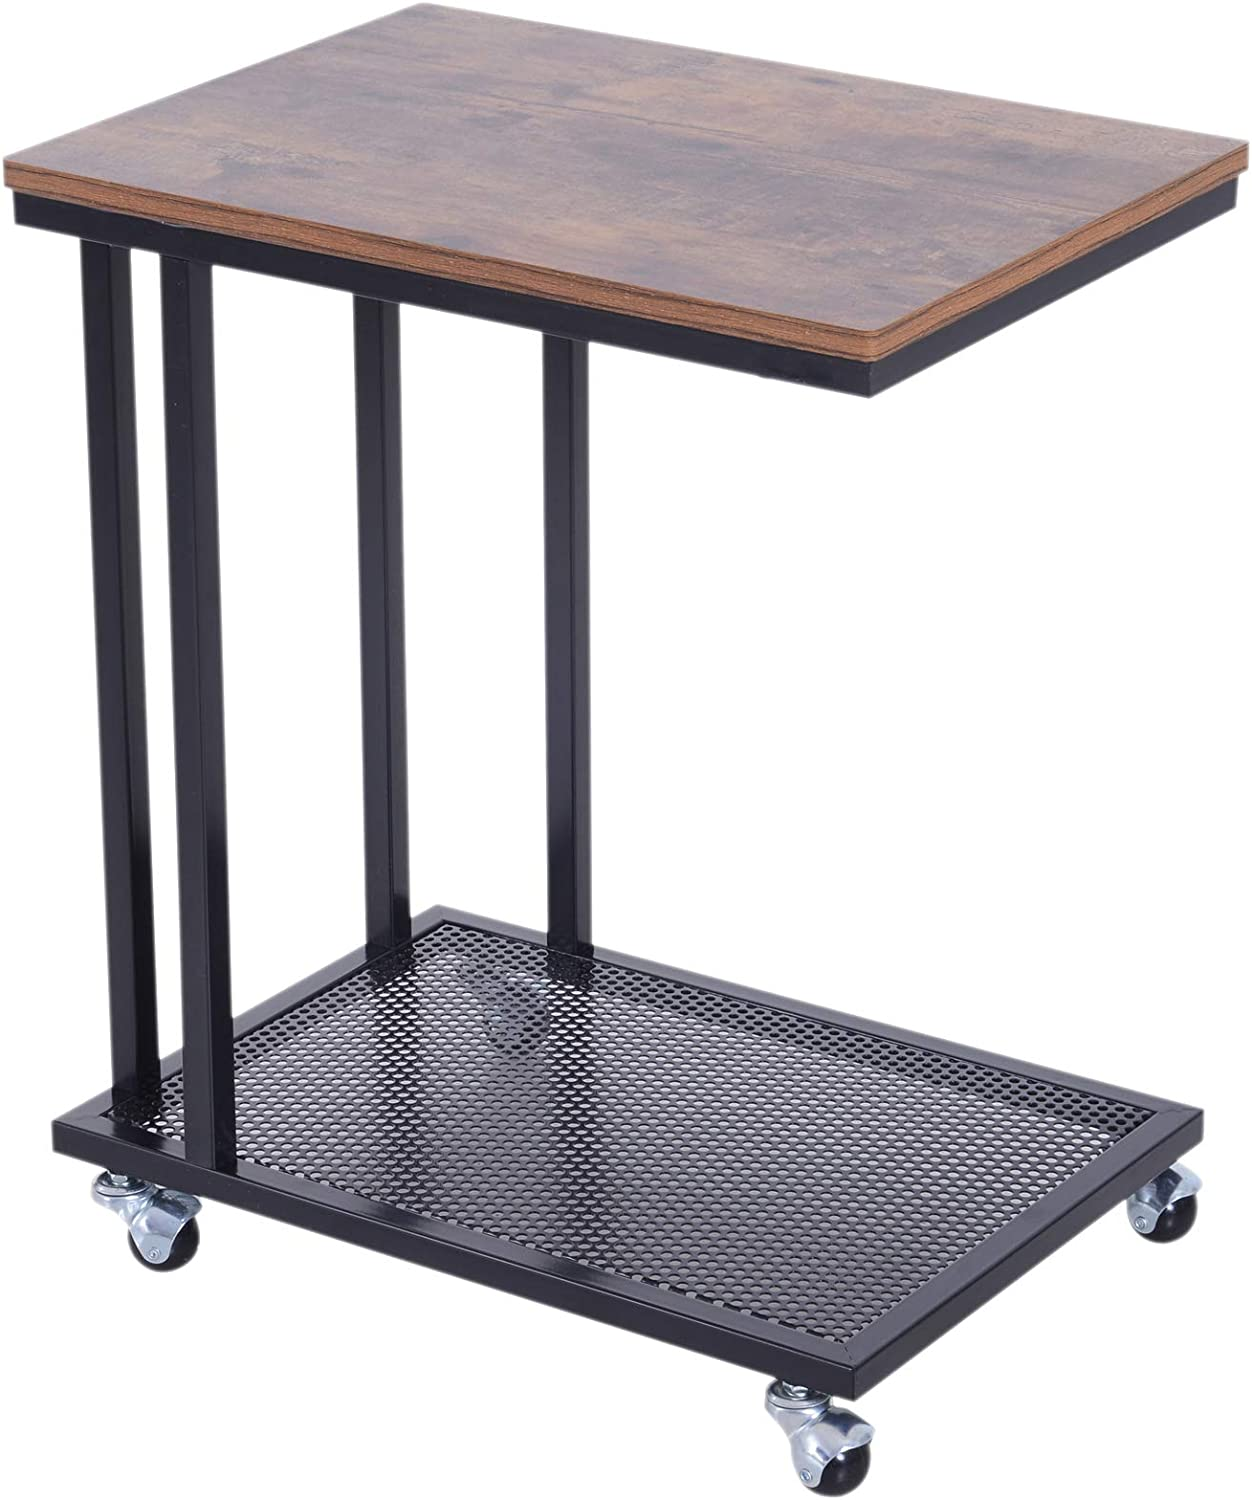 - HOMCOM Mobile Sofa Side End Coffee Table Coffee Table Laptop Stand Metal  Frame Rolling Castors Storage Wooden Trolly: Amazon.co.uk: Kitchen & Home